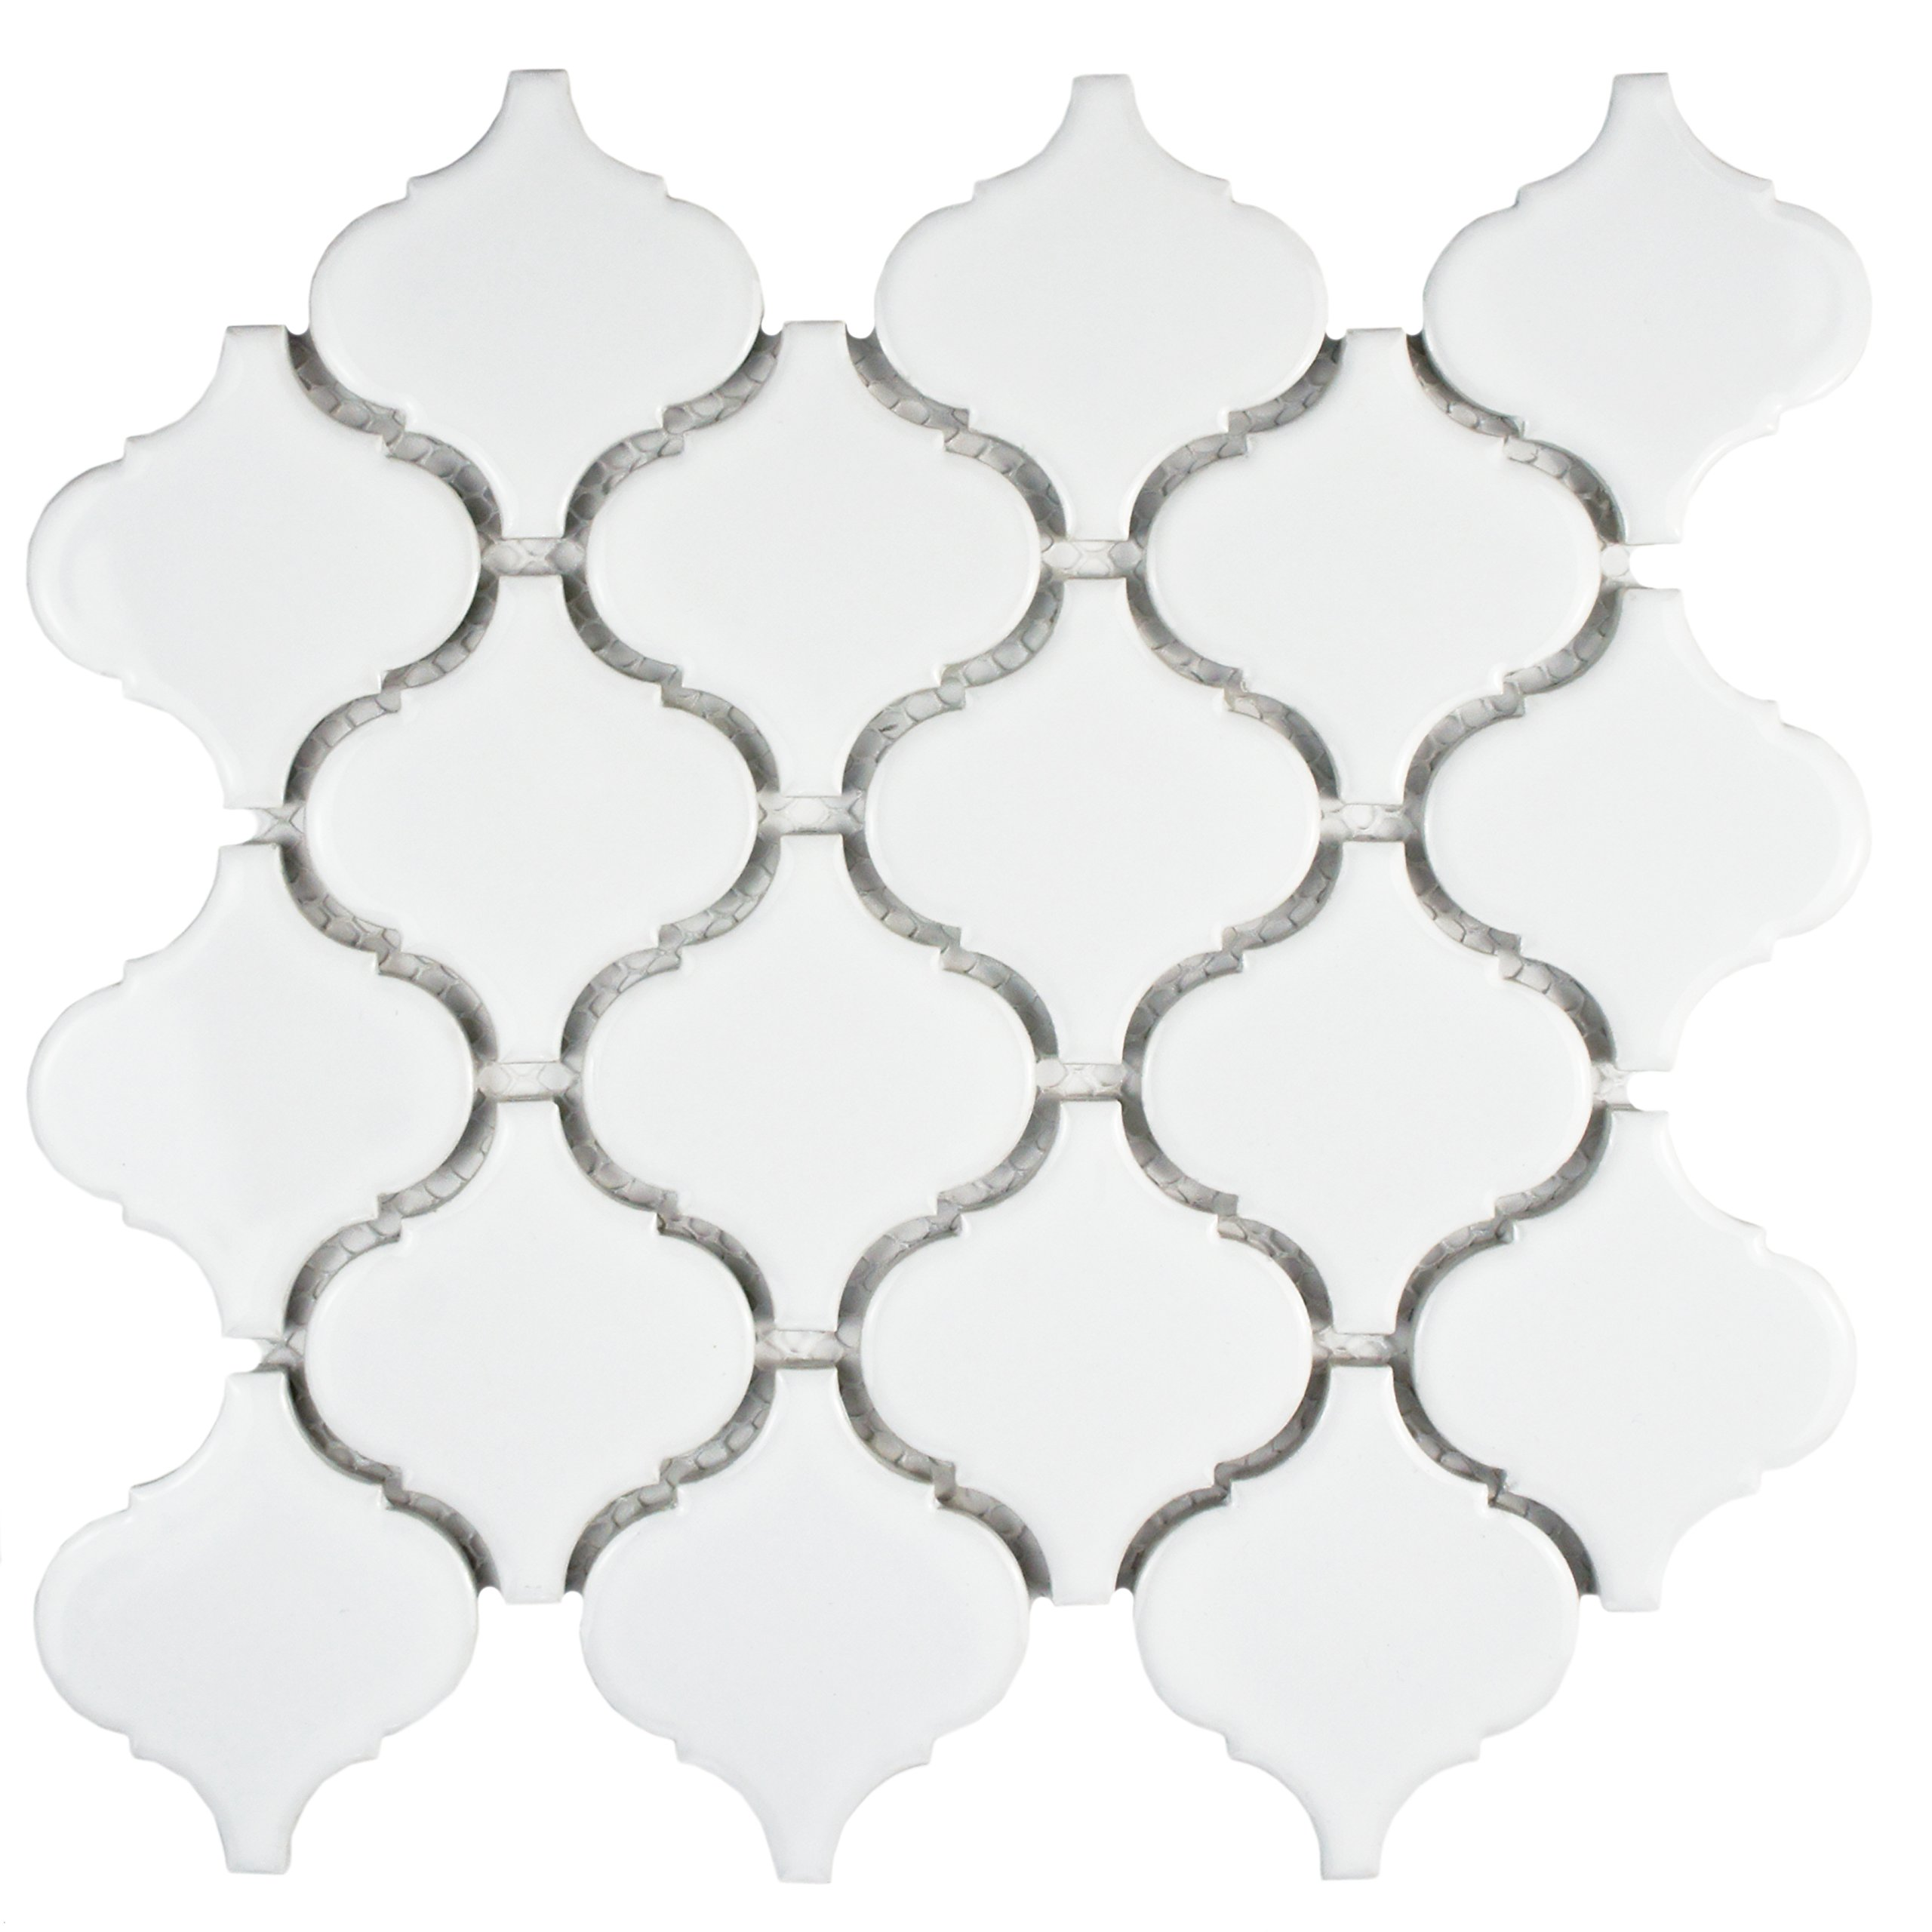 SomerTile FDXMLGW Retro Beacon Porcelain Floor and Wall Tile, 9.75'' x 10.25'', White